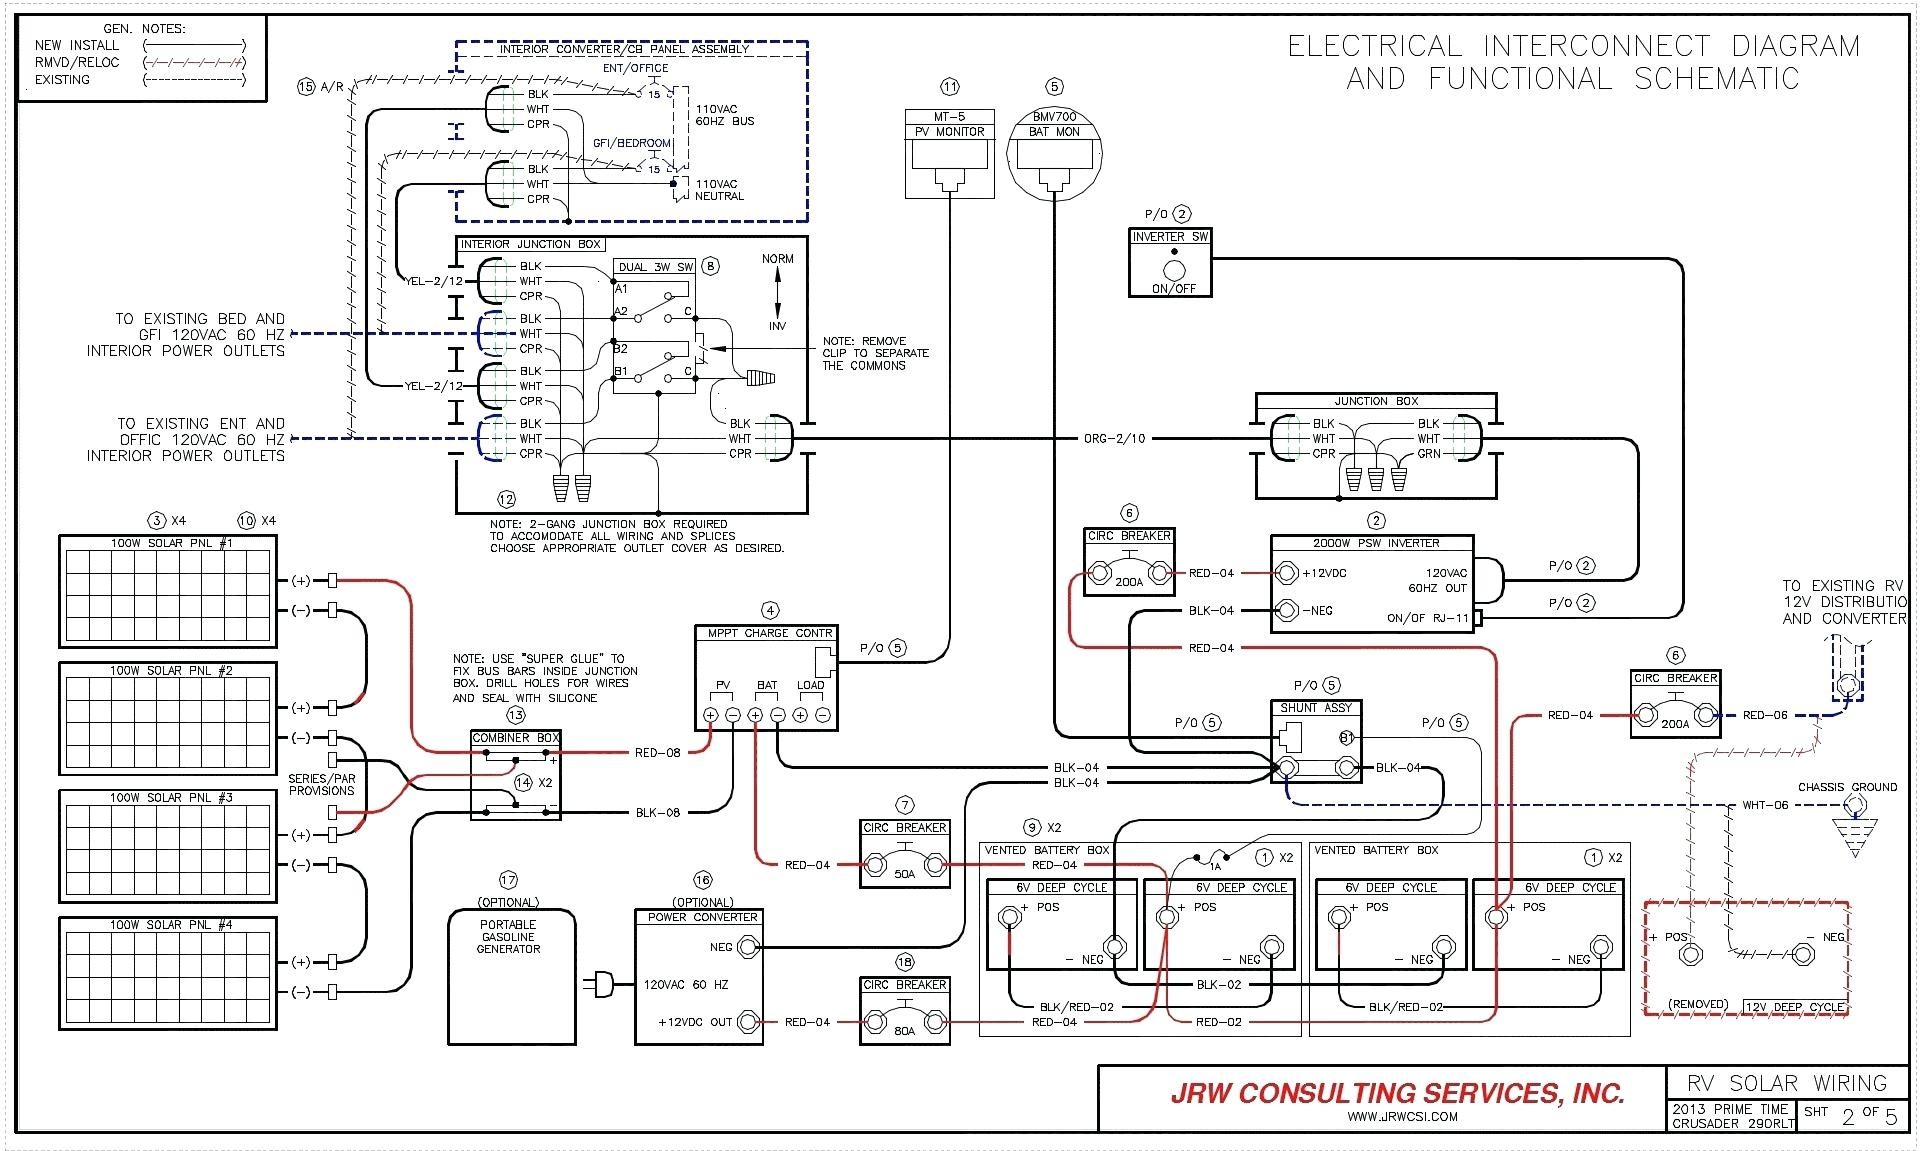 Duo therm Rv Air Conditioner Wiring Diagram Duo therm thermostat Wiring Diagram Troubleshooting Free Of Duo therm Rv Air Conditioner Wiring Diagram Fresh Duo therm thermostat Wiring Diagram Diagram